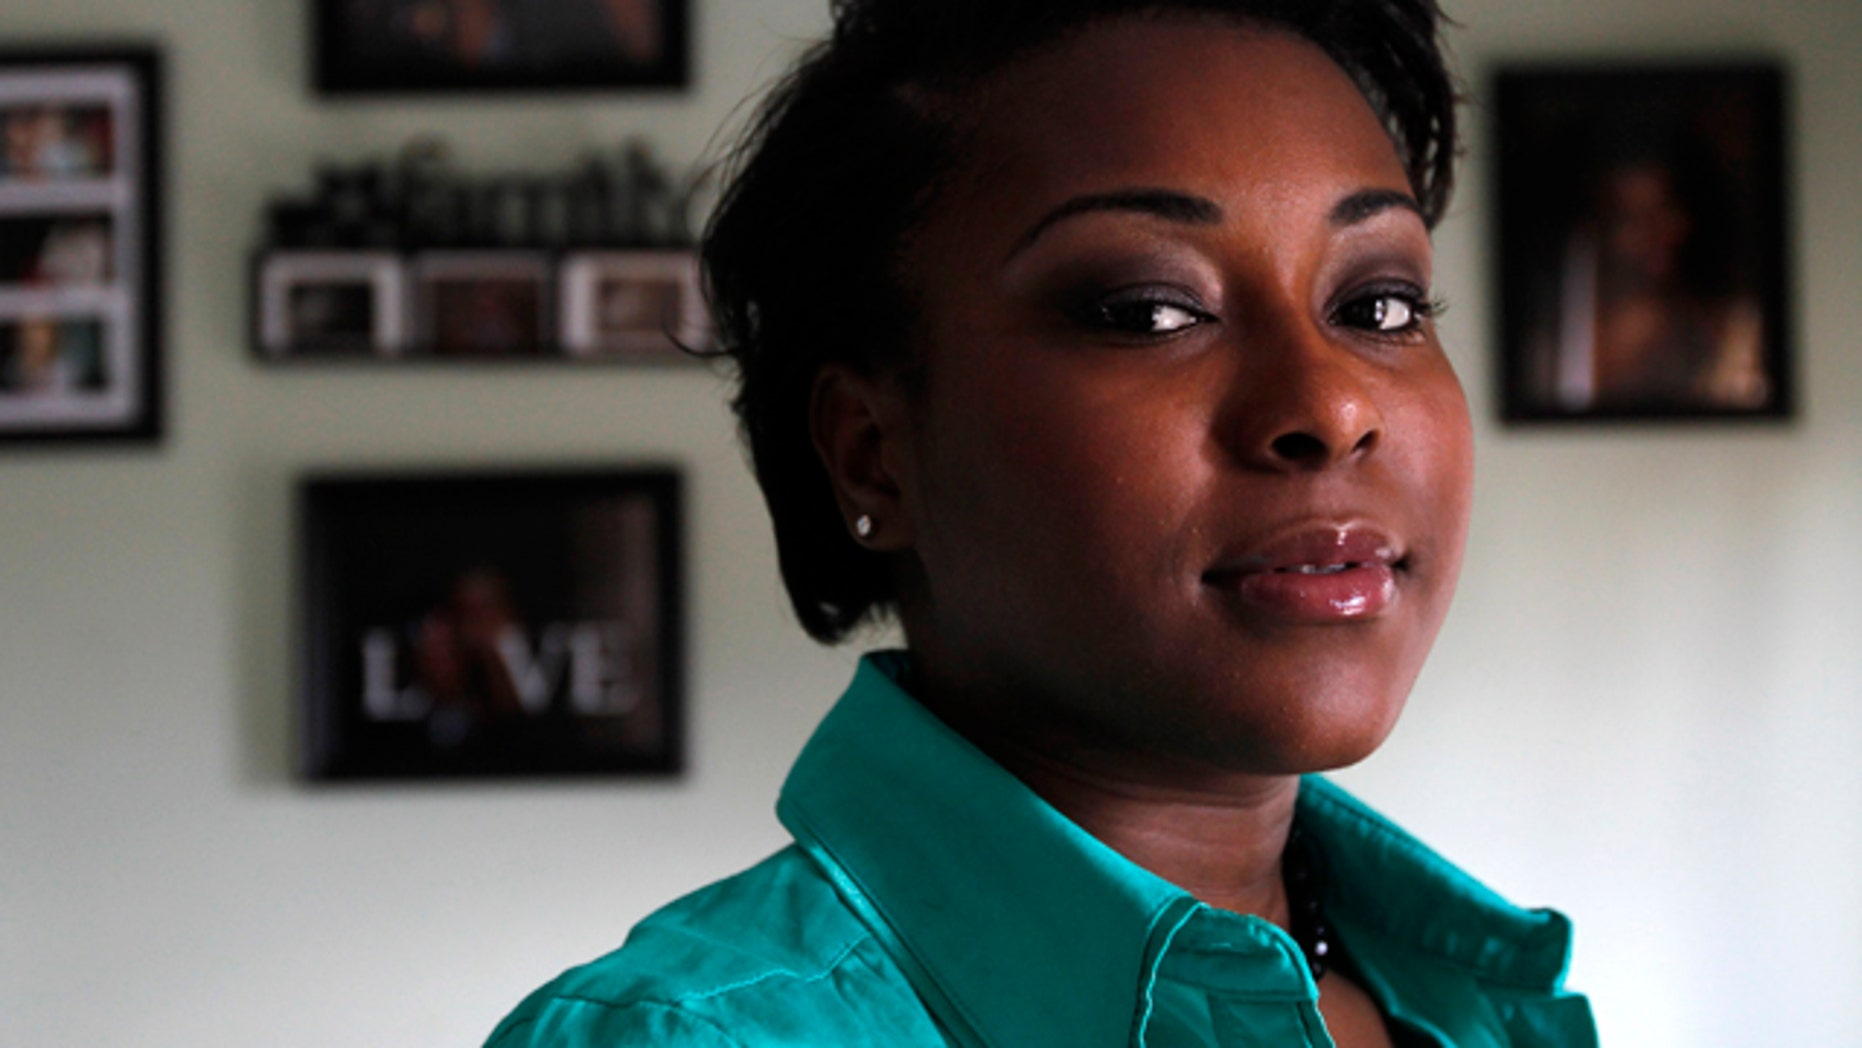 Oct. 5: Dee Saint Franc, 21, of Providence, R.I., stands for a portrait in front of family photos in her home. Saint Franc left the Rhode Island foster care system at age 18 eager to start life on her own. She went to a Verizon store to buy a phone and instead learned that someone had used her identity to rack up $3,000 worth of delinquent bills at Verizon dating back to 1998.